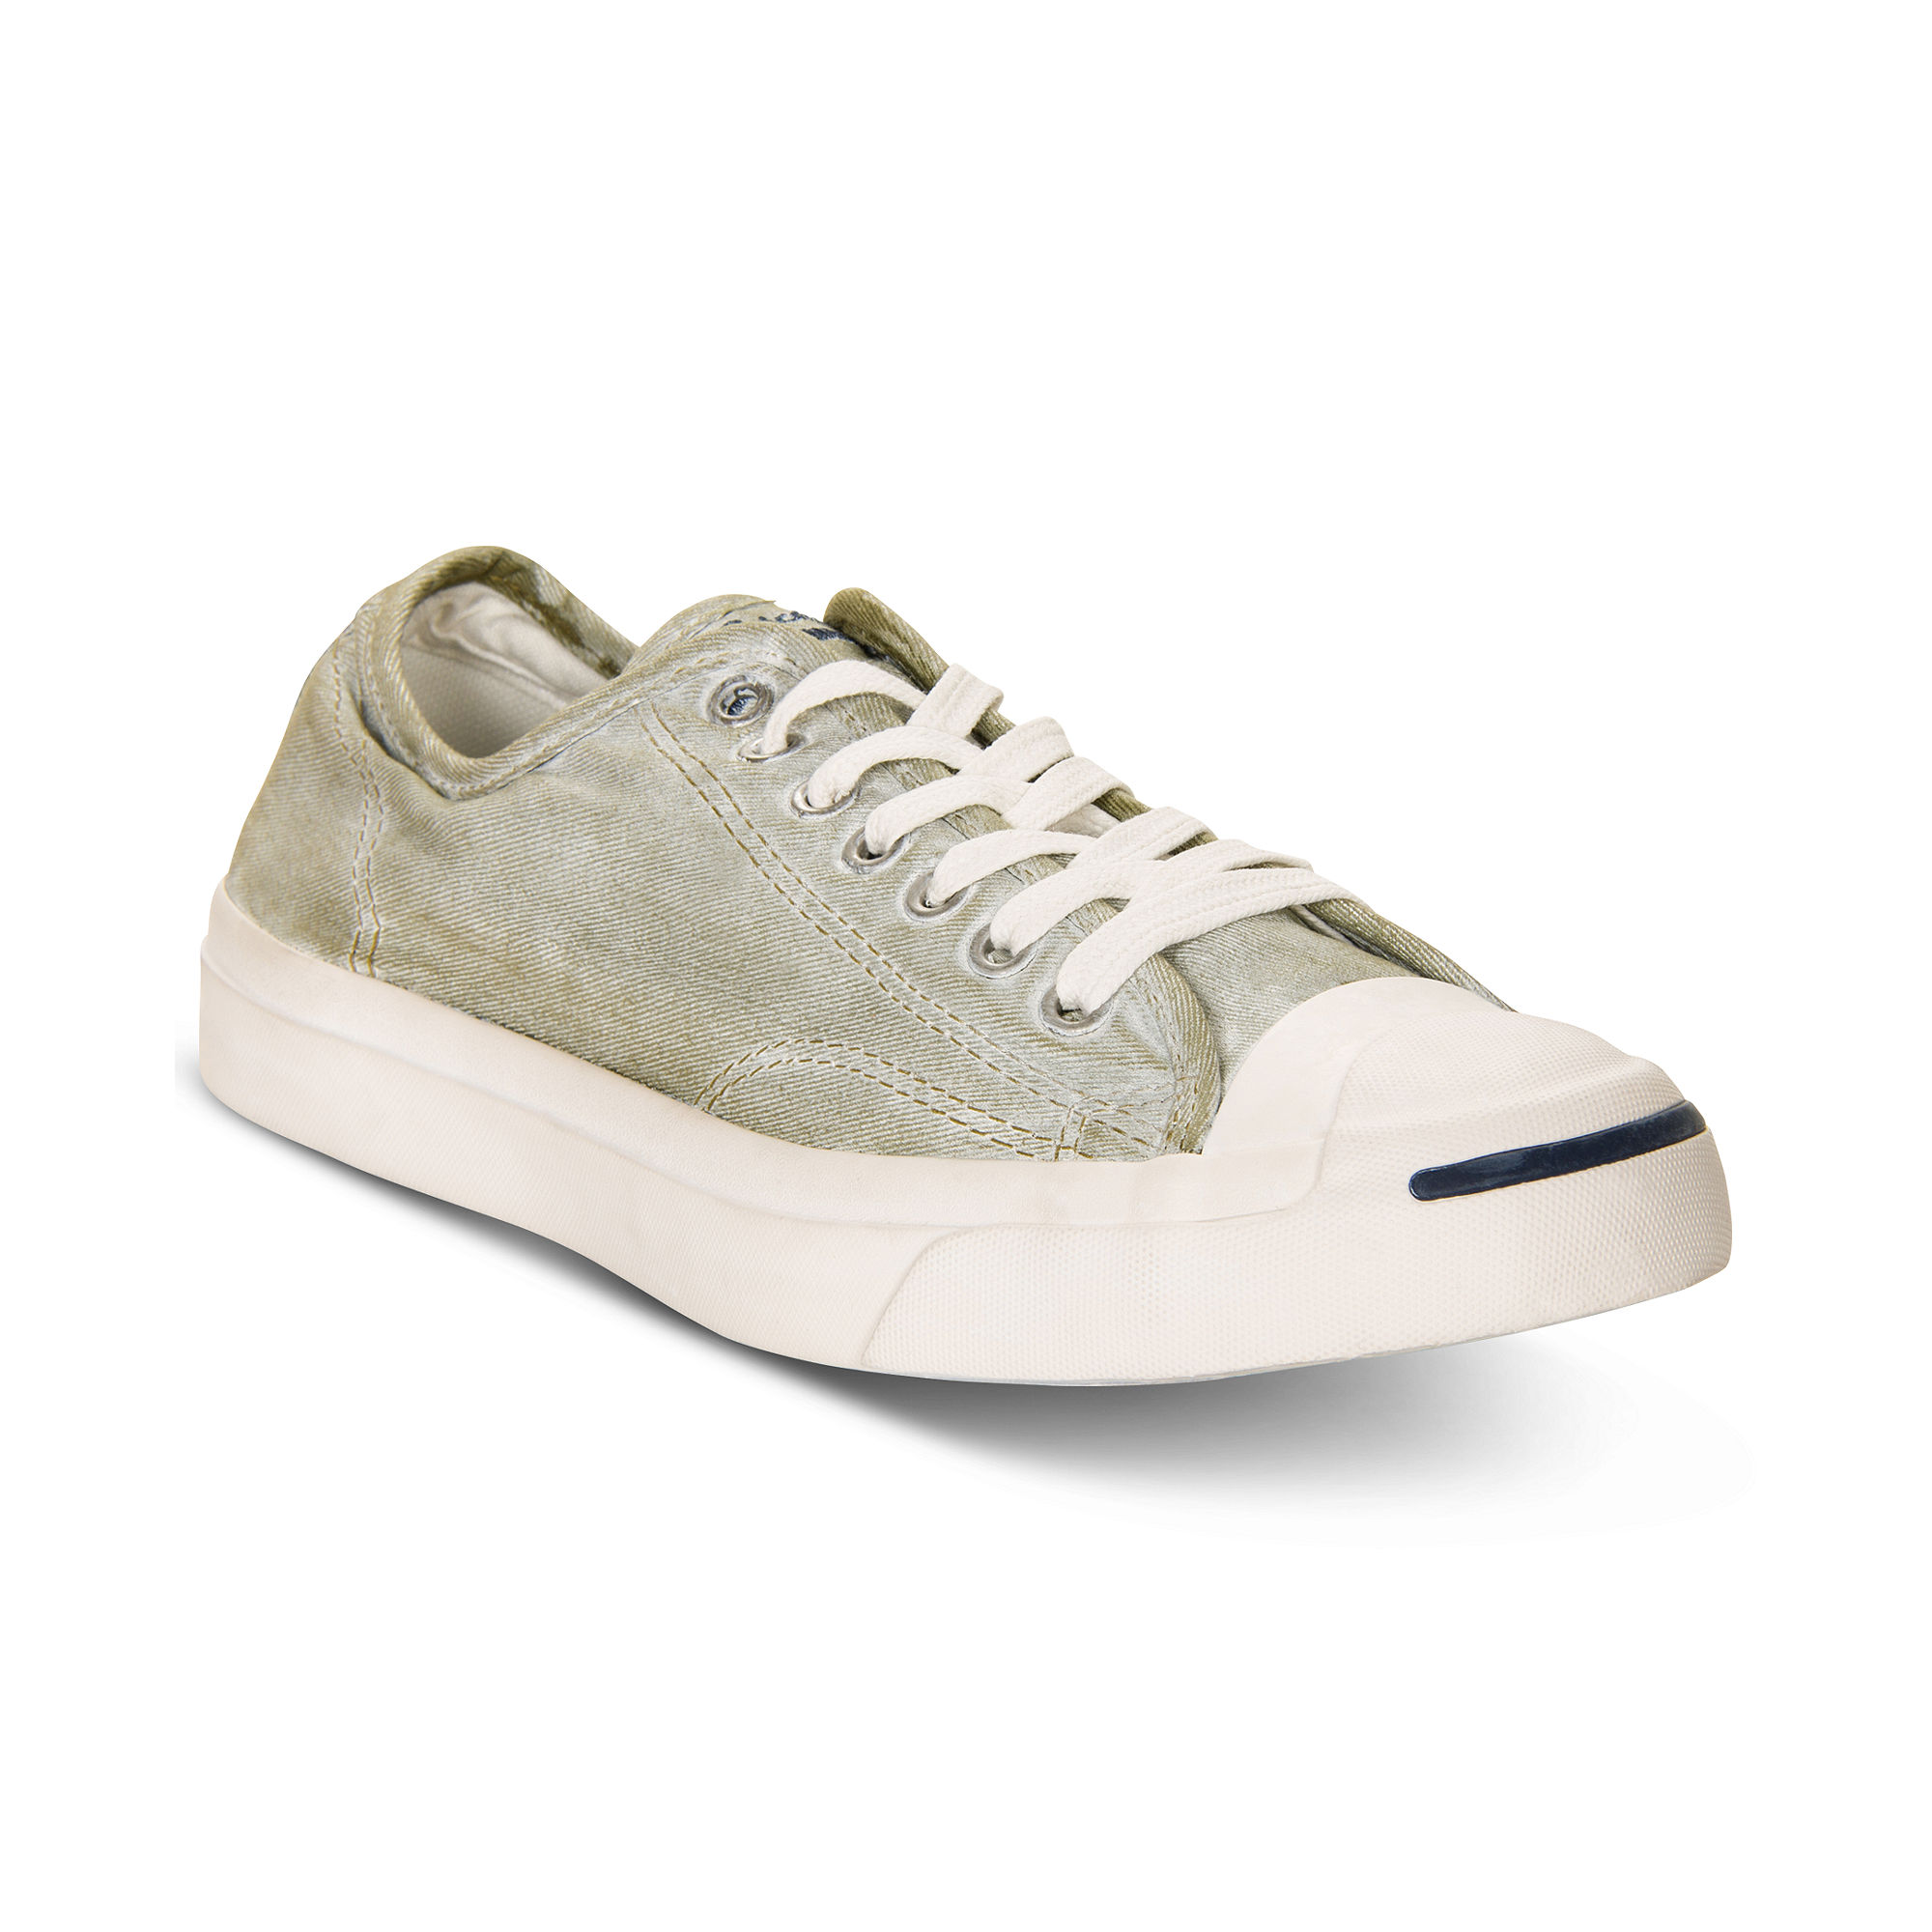 d942a32321c Lyst - Converse Indigo Wash Sneakers in Green for Men